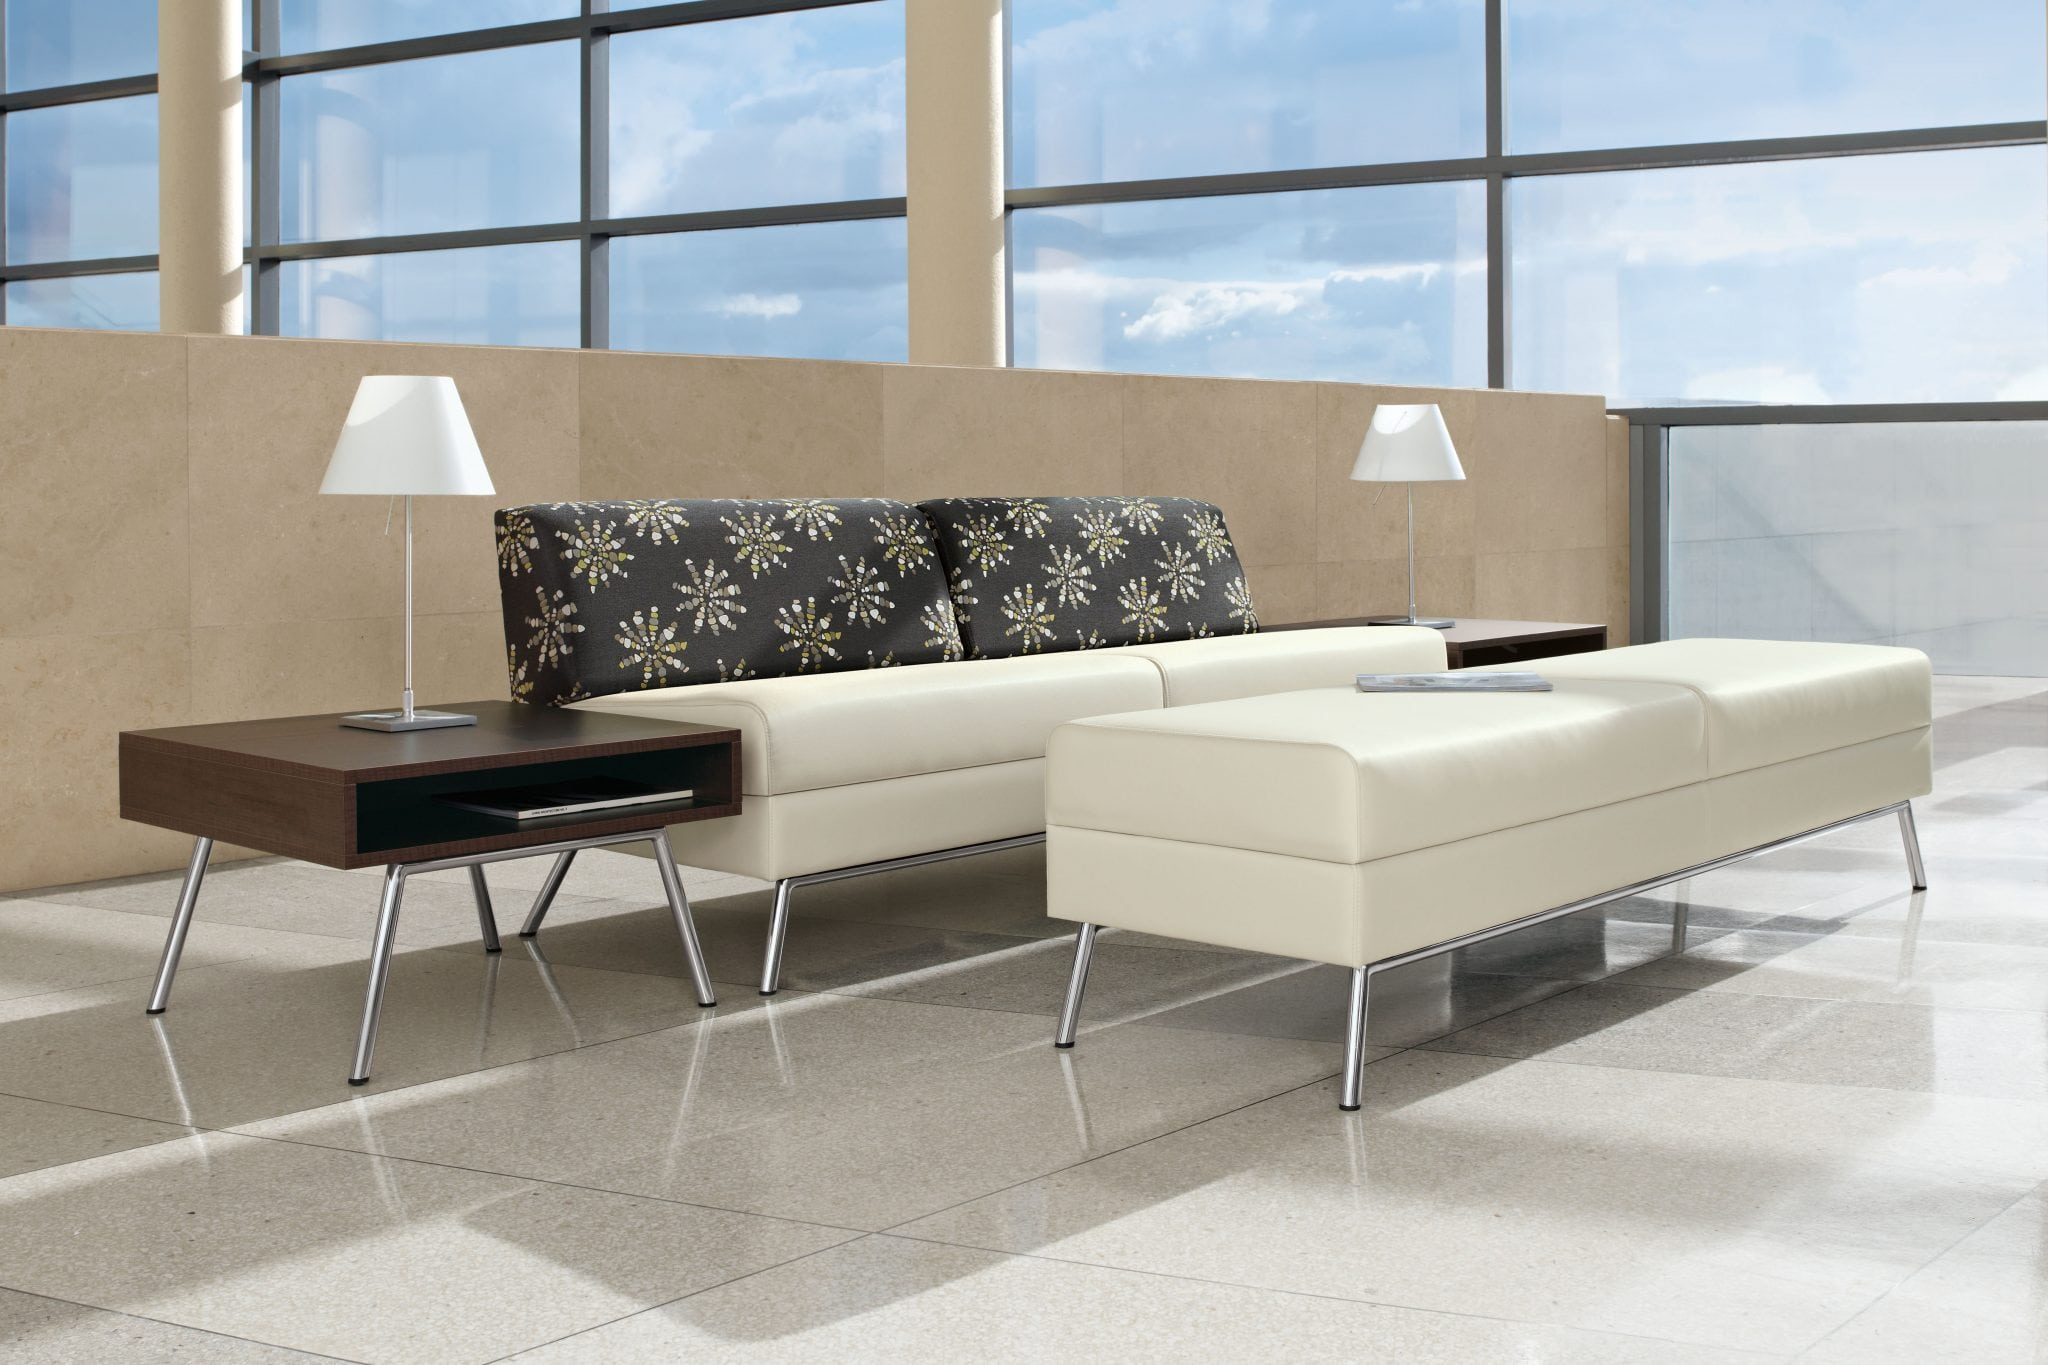 Wind Linear - A very popular seating collection